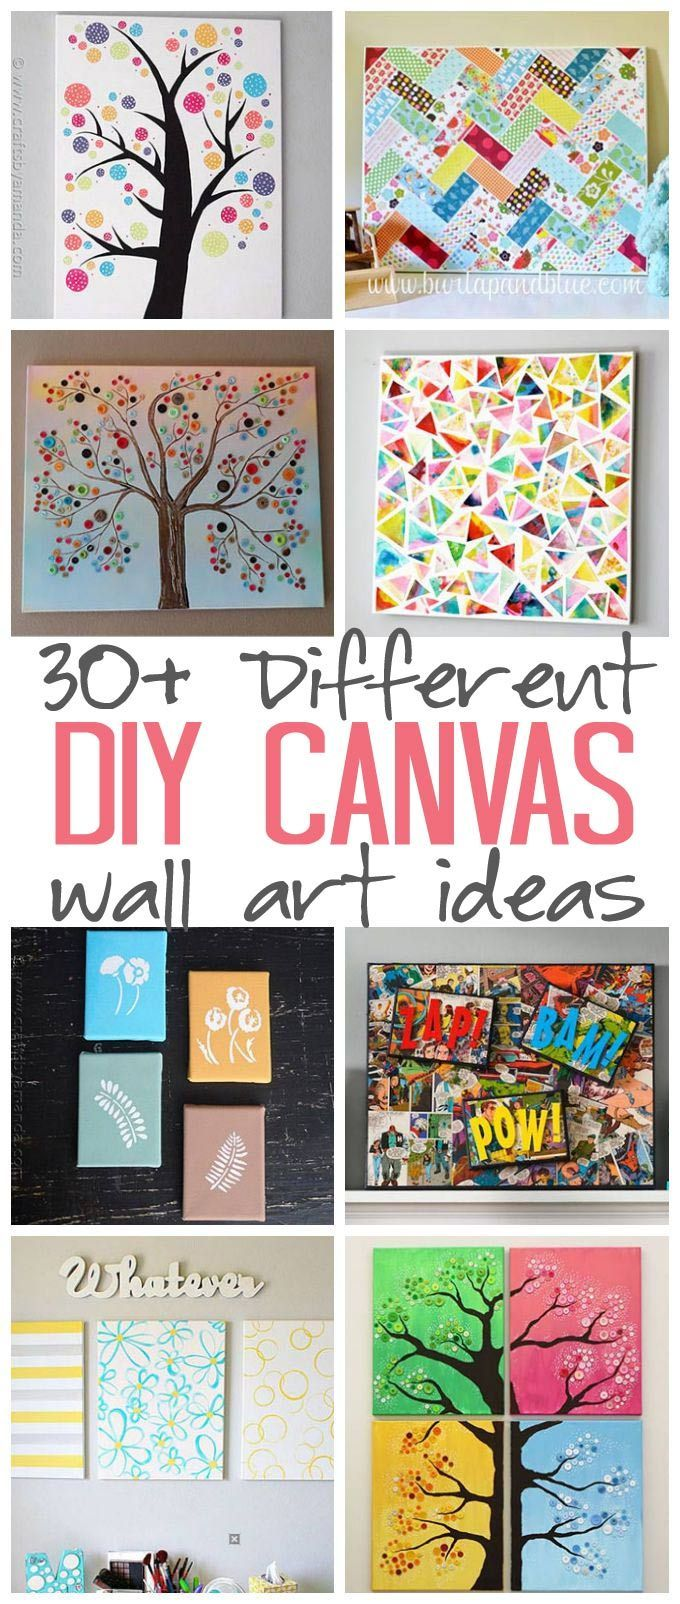 Design Diy Art best 25 diy canvas art ideas on pinterest cool silhouettes and inspirational art